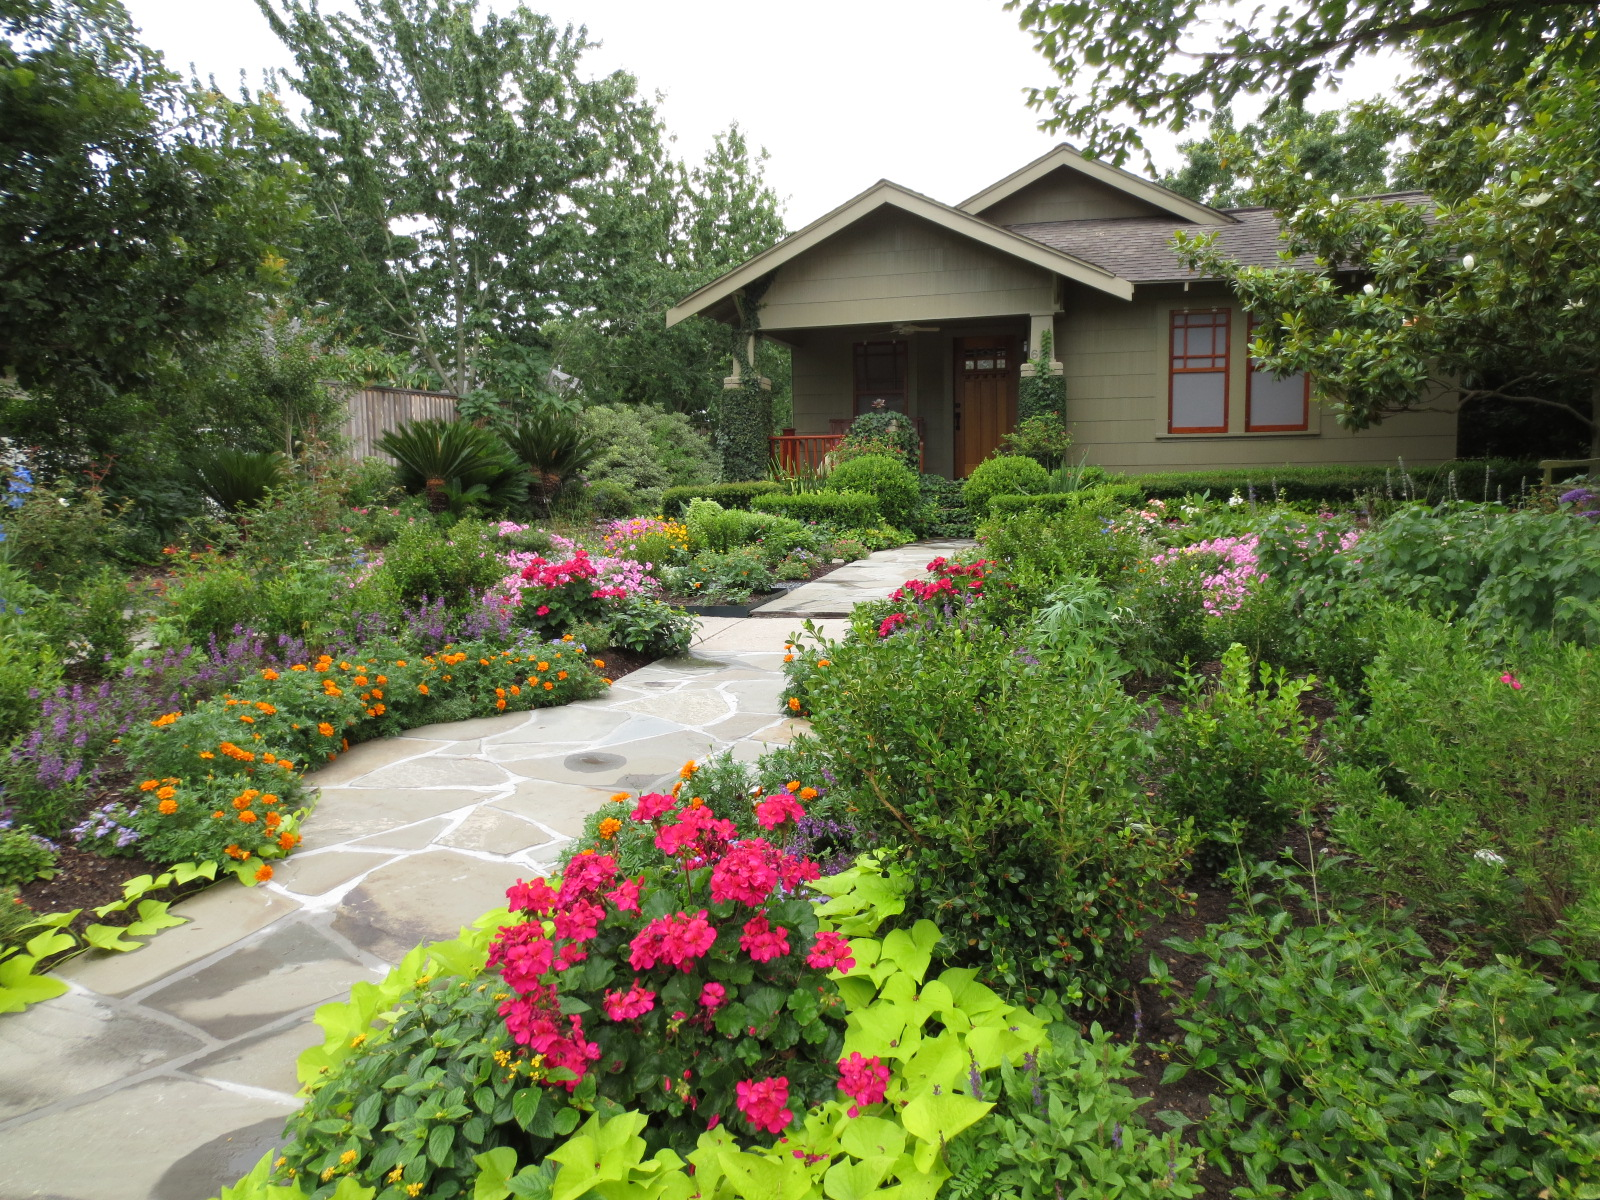 The OtHeR HoUsToN: GREAT BUNGALOW GARDEN IDEAS